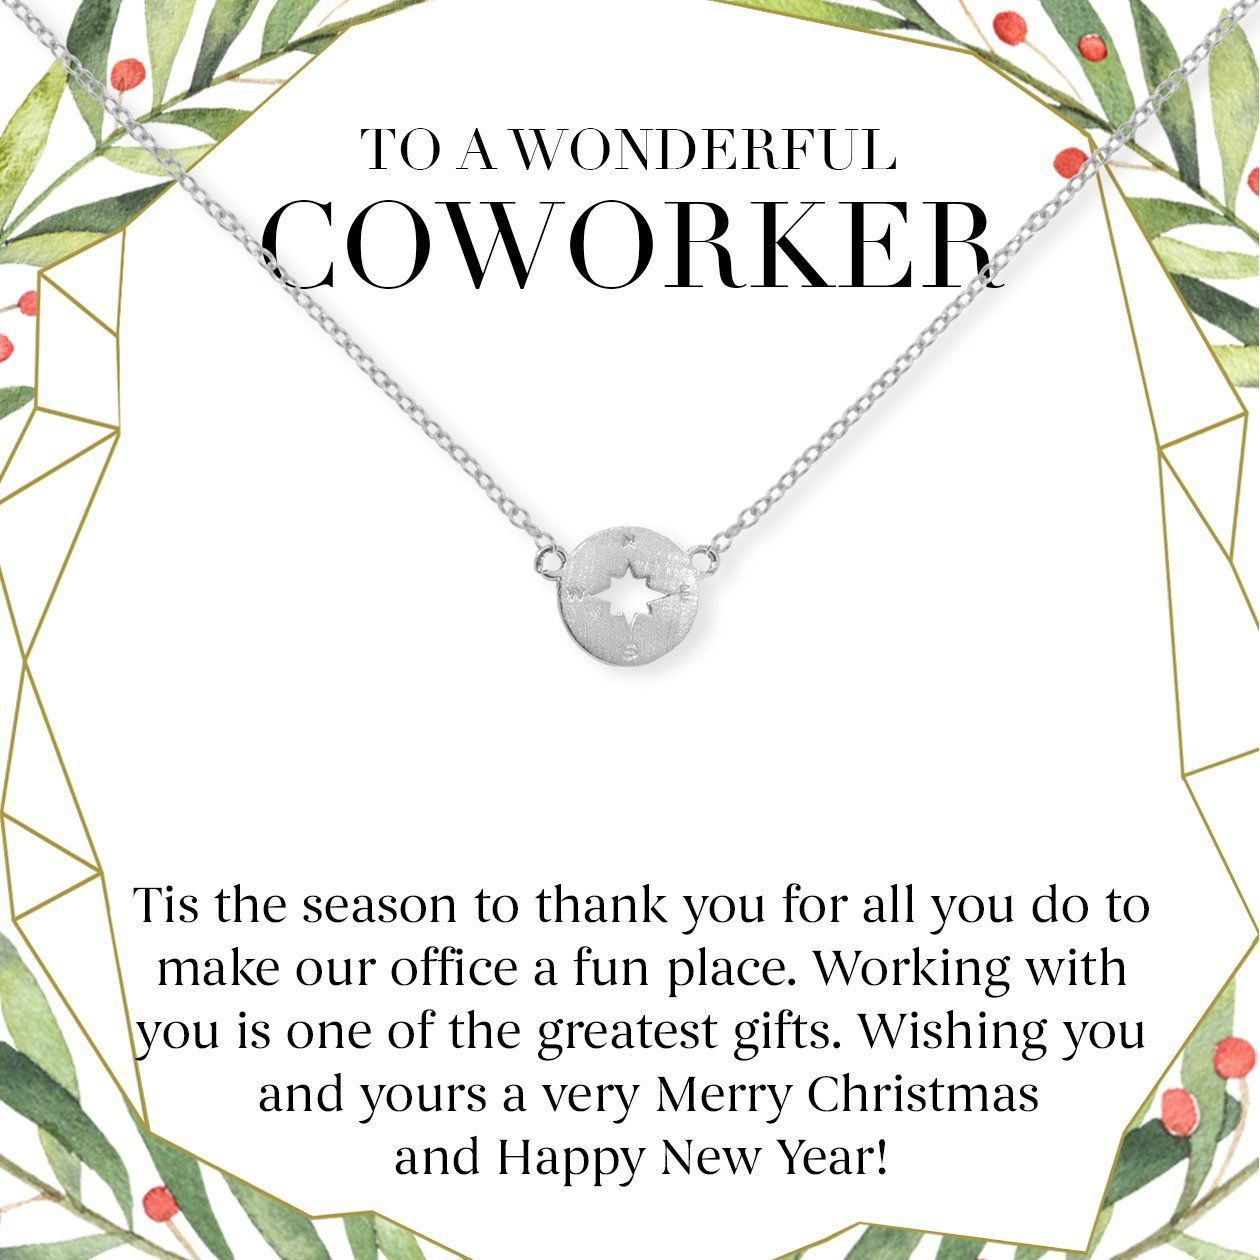 Christmas Gift for Coworker: Best Present, Necklace, Jewelry, Holiday, Gift Idea, Office Gift Exchange, Secret Santa, Colleague, Multiple Necklace Styles, Compass / Silver #secretsantaideasforwork Christmas Gift for Coworker: Best Present, Necklace, Jewelry, Holiday, Gift Idea, Office Gift Exchange, Secret Santa, Colleague, Multiple Necklace Styles, Compass / Silver